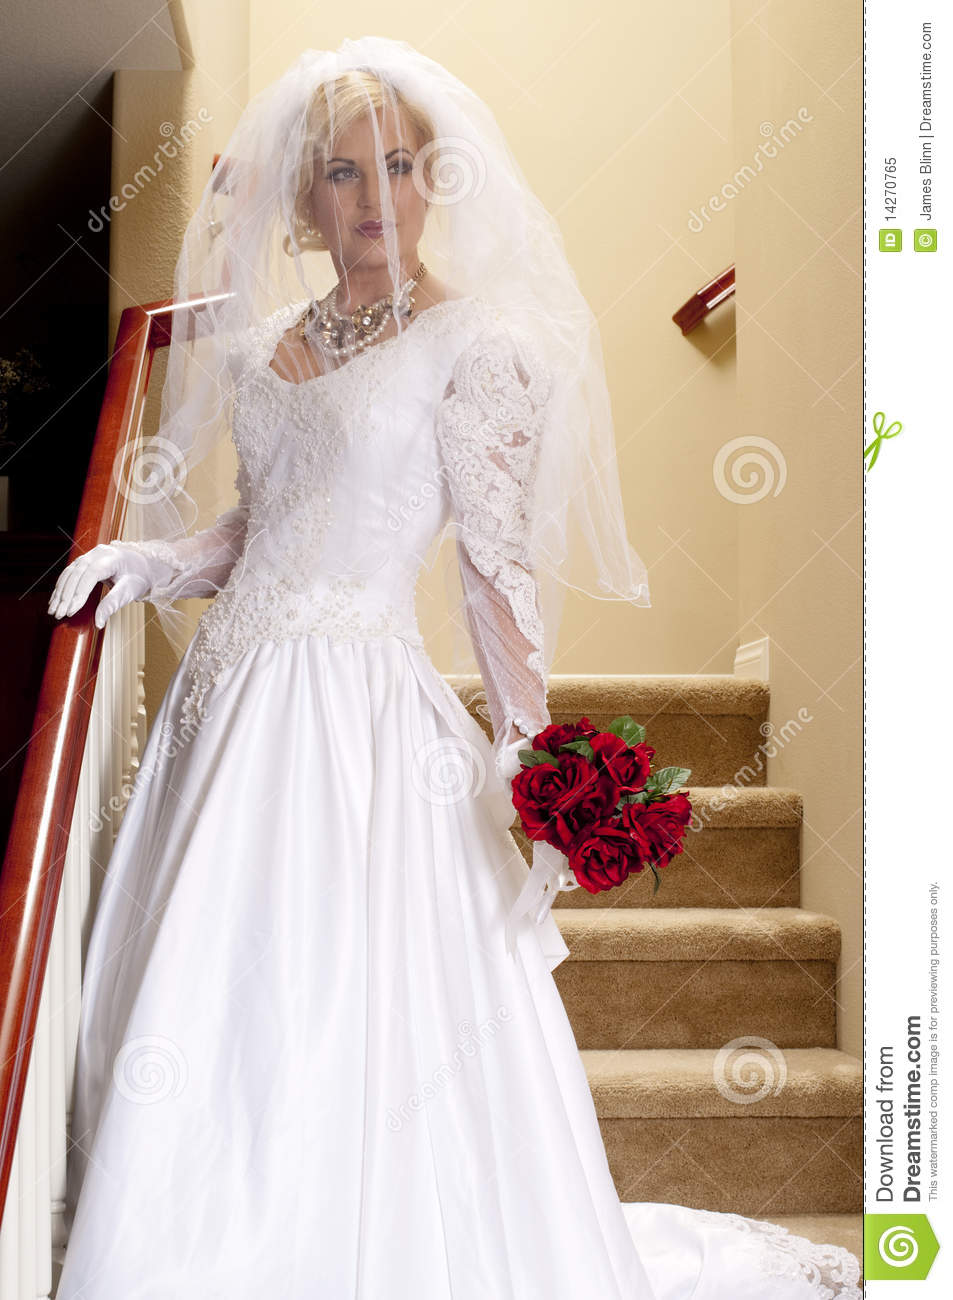 Bride Striptease 1 Royalty Free Stock Photo Image 14270765